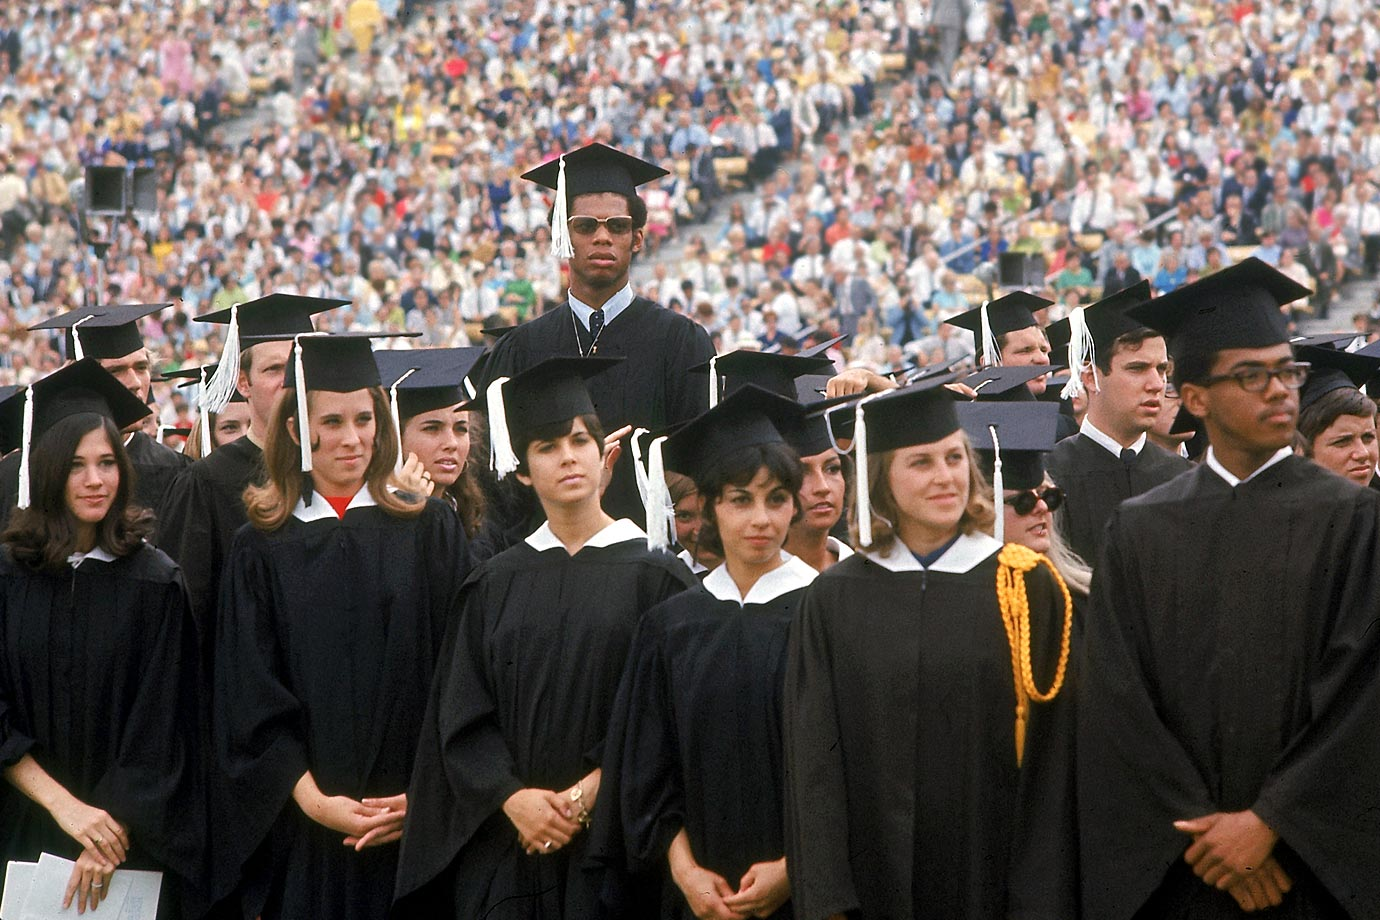 Happy birthday Kareem Abdul-Jabbar Lew Alcindor graduates from UCLA, June 1969 Photo: Curt Gunther